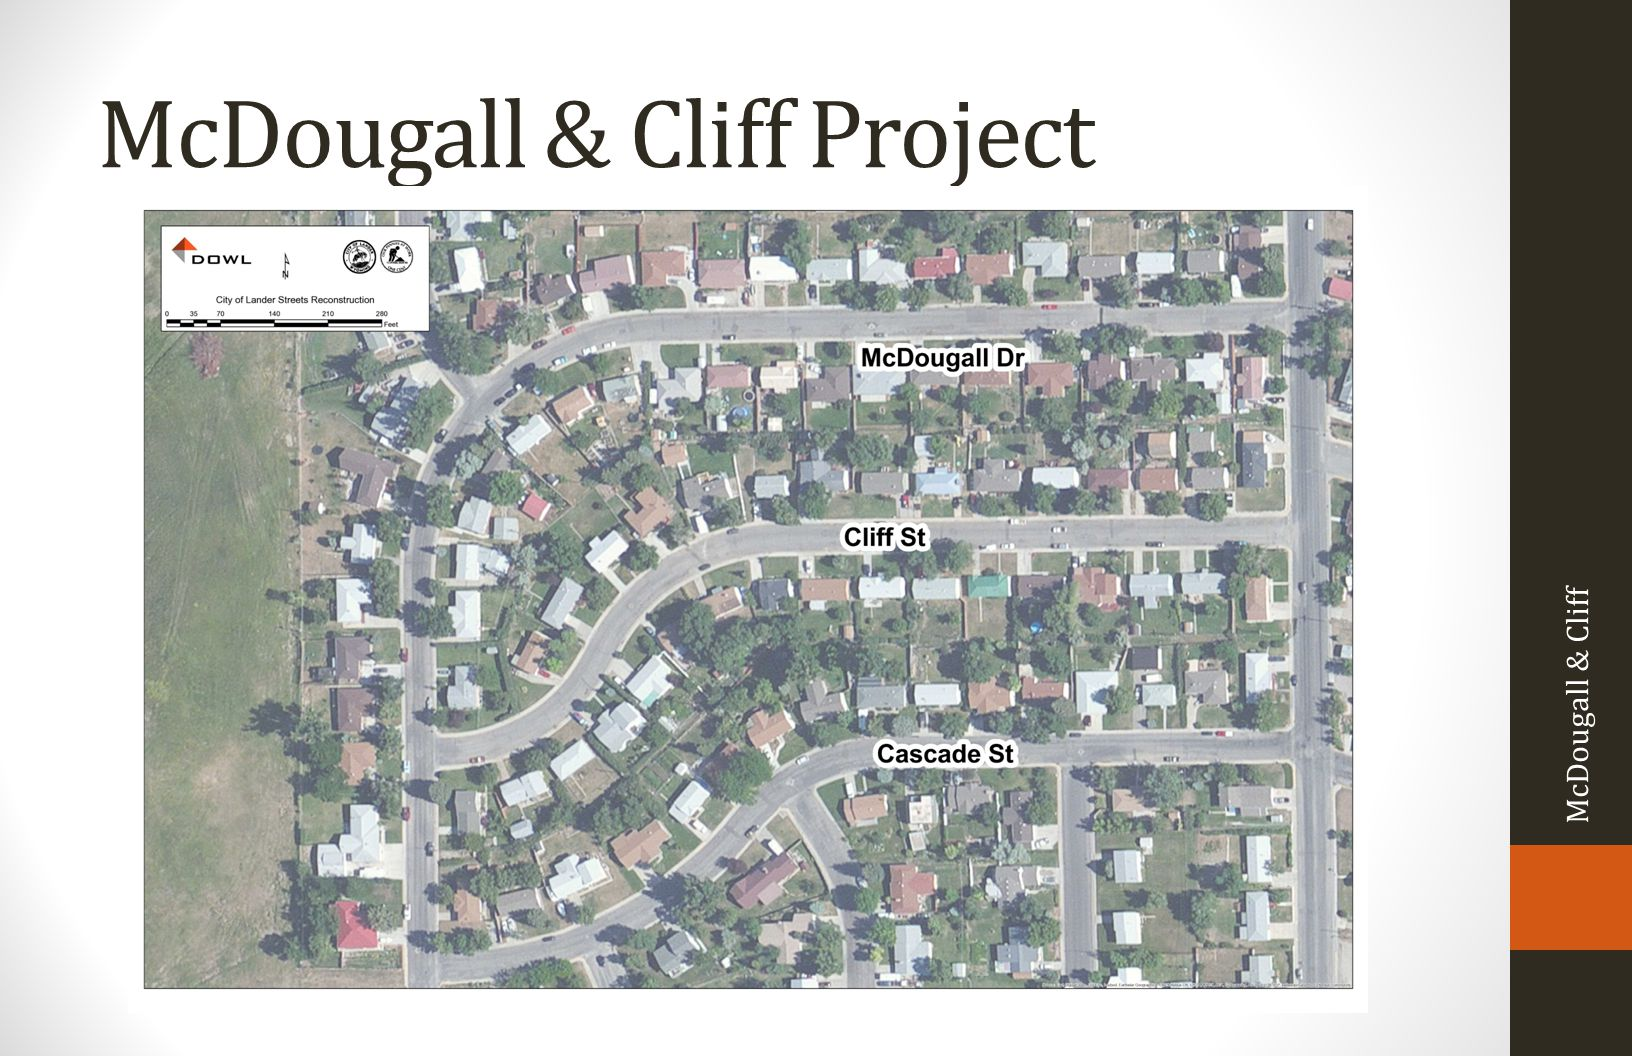 McDougall & Cliff Project McDougall & Cliff